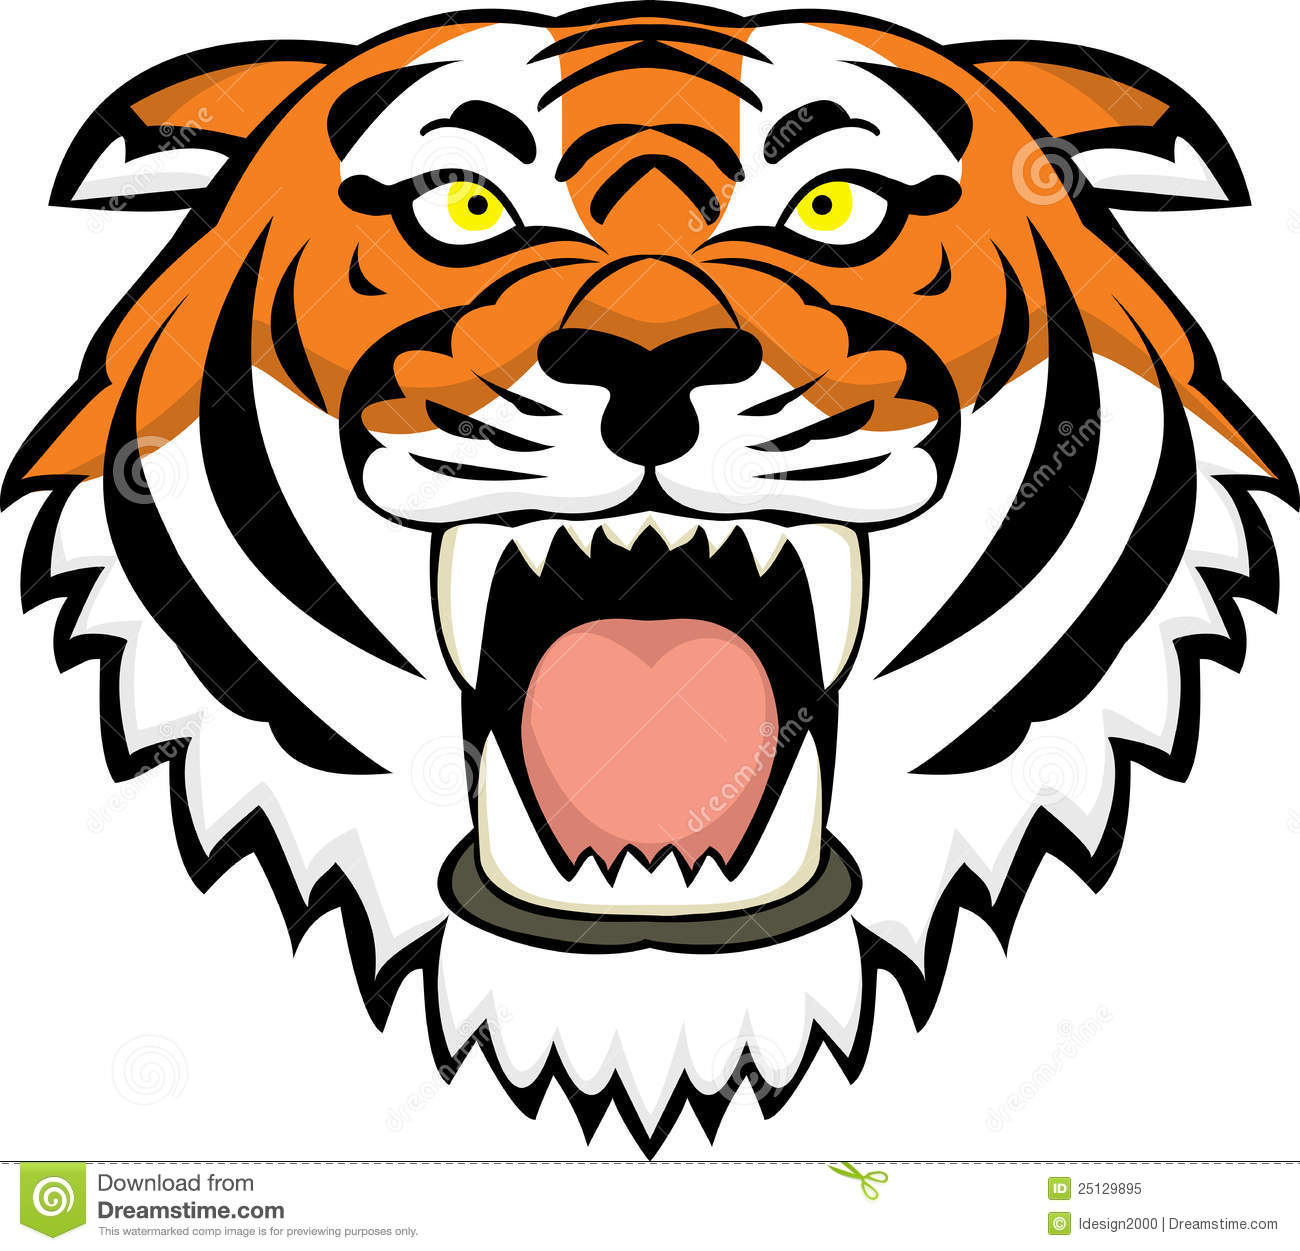 tiger drawing cartoon at getdrawings com free for personal use rh getdrawings com cartoon tiger face pictures cartoon tiger face images